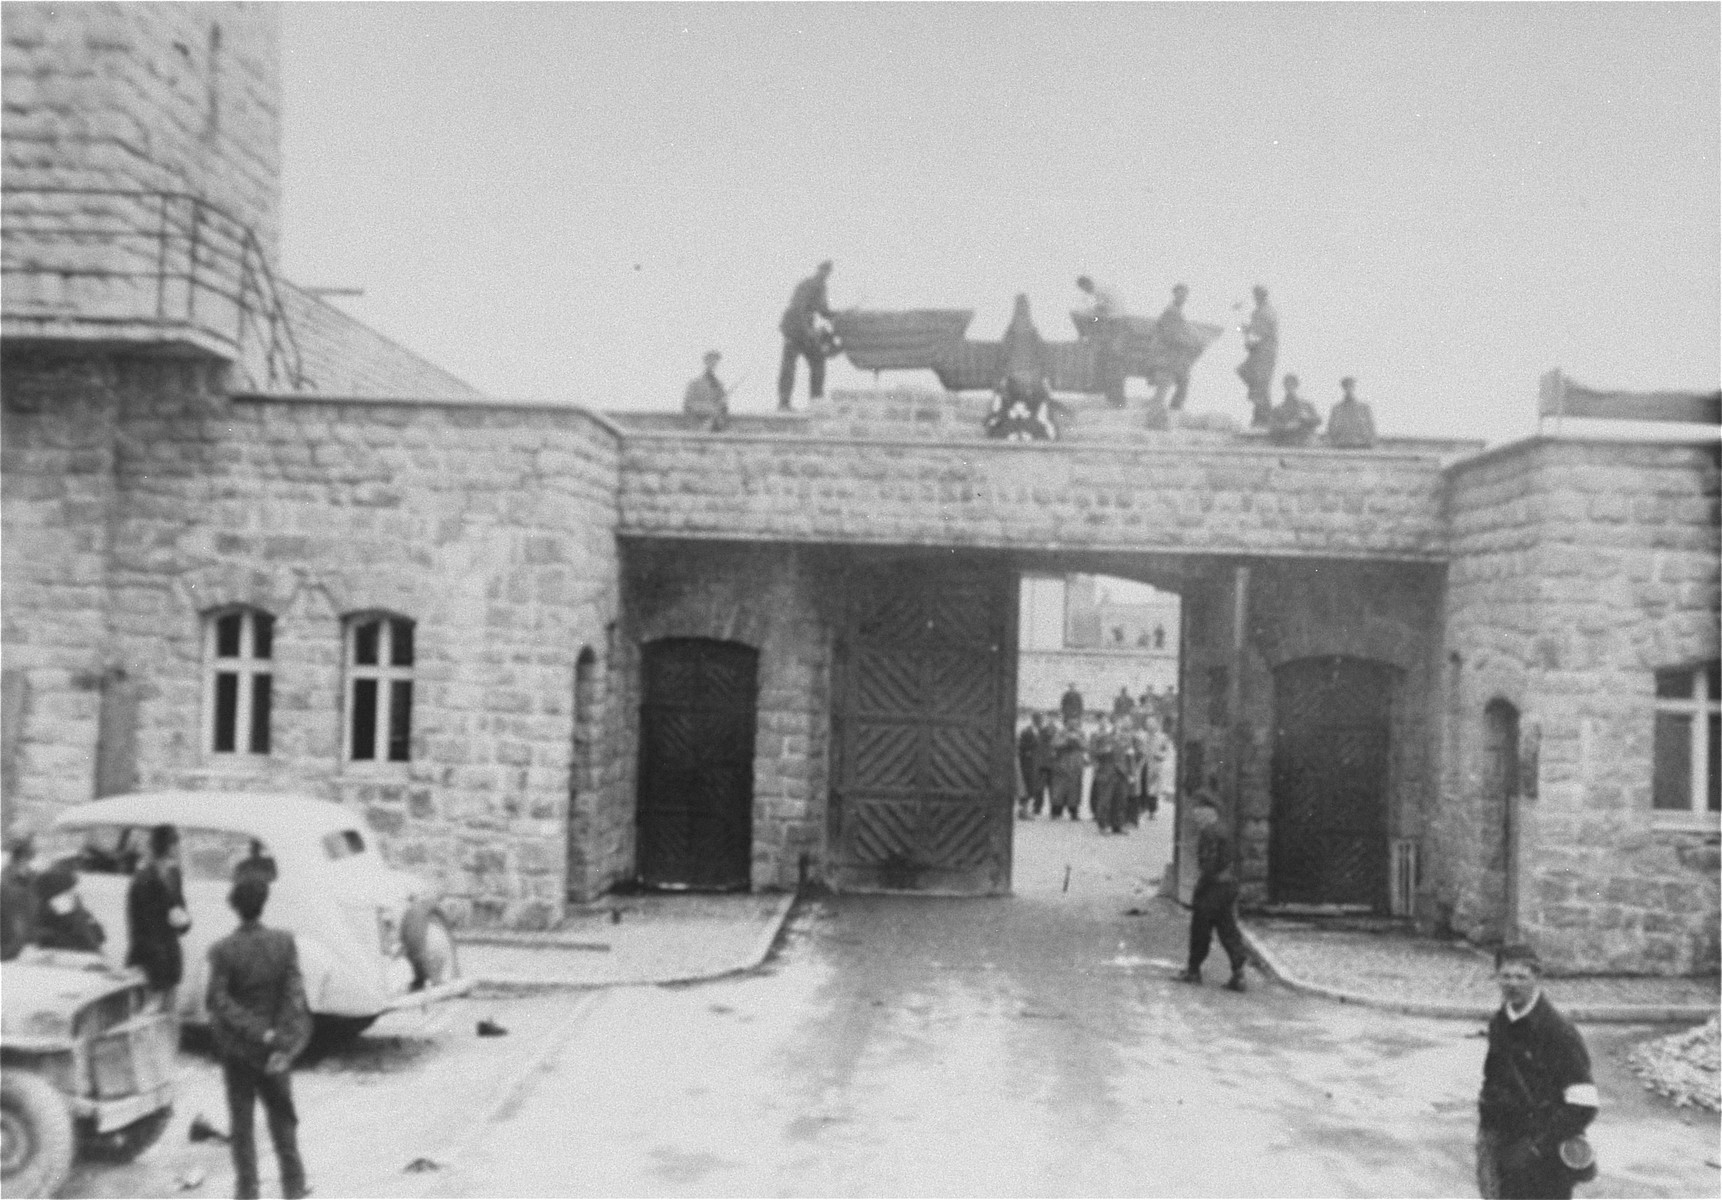 Survivors take down the Nazi eagle that hangs above the entrance to the SS compound in Mauthausen on the day of liberation.    The white car belongs to the Red Cross.  A Red Cross representative and two German SS officers arrived at the camp in this car to surrender Mauthausen to the U.S. Army.